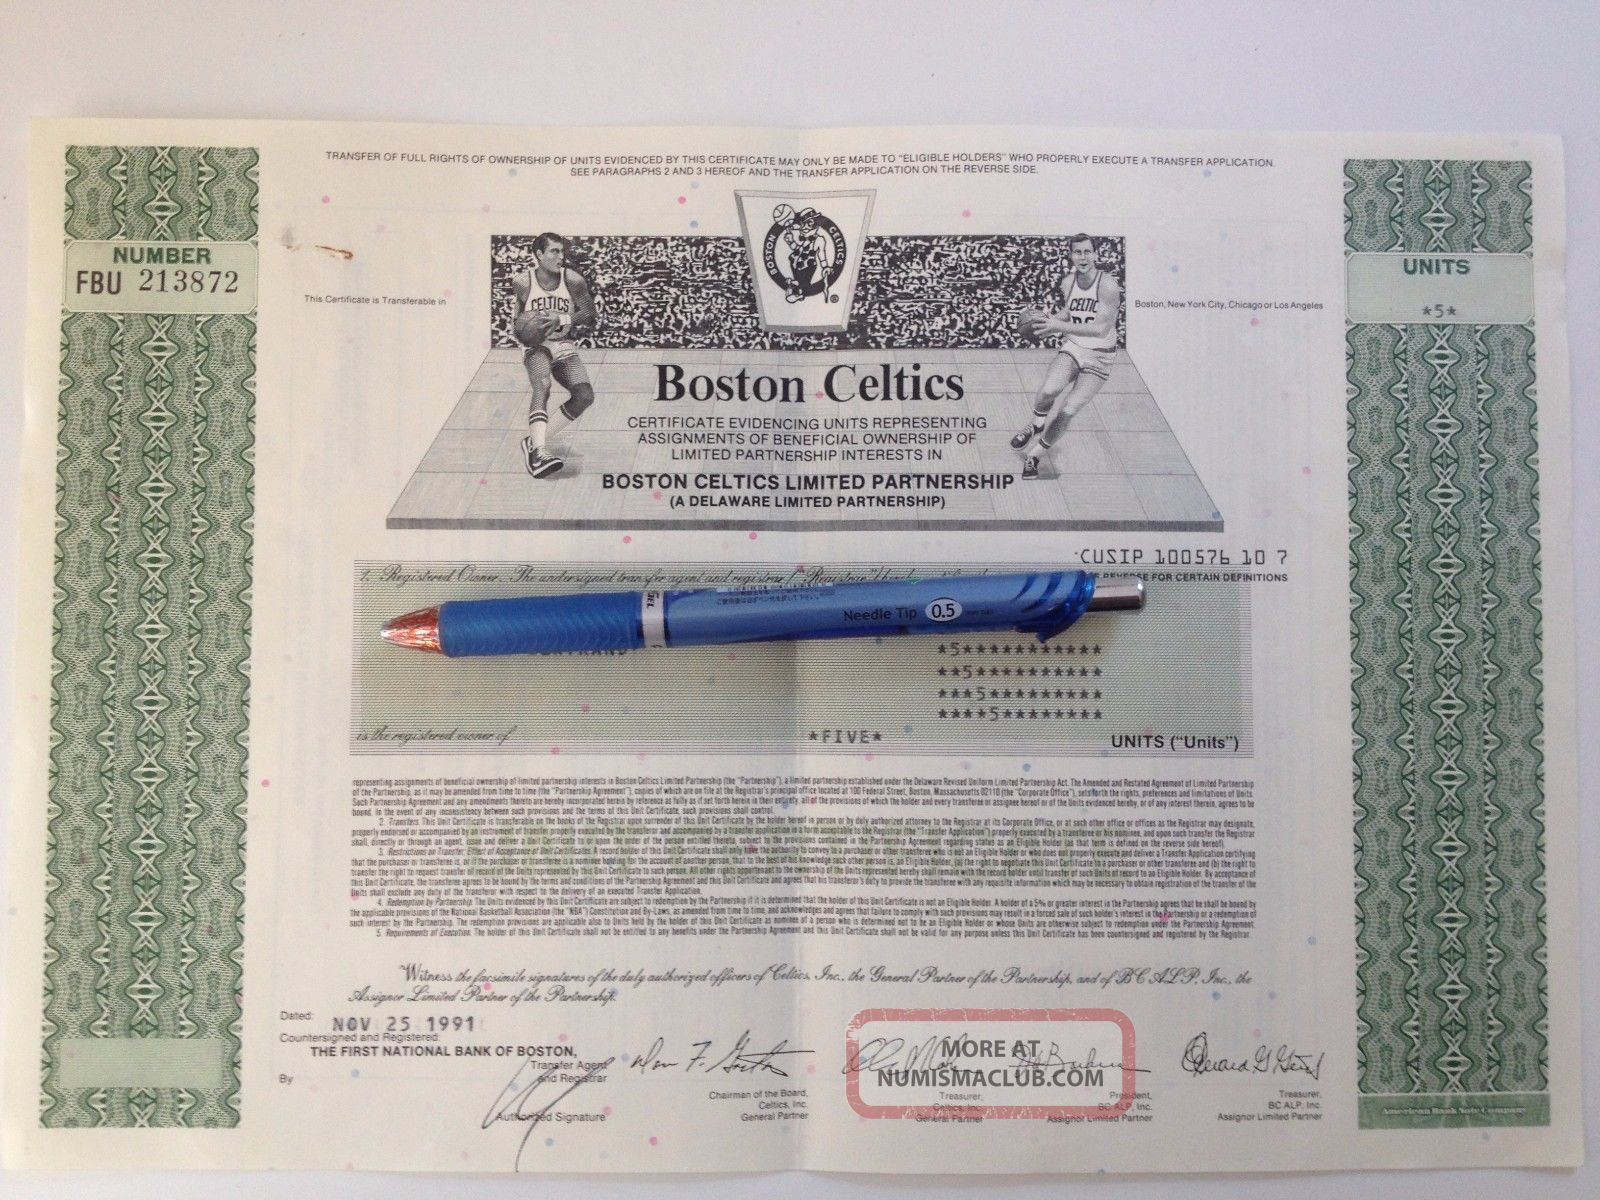 Rare 1991 Boston Celtics Stock Certificate - 5 Shares - With Stocks & Bonds, Scripophily photo